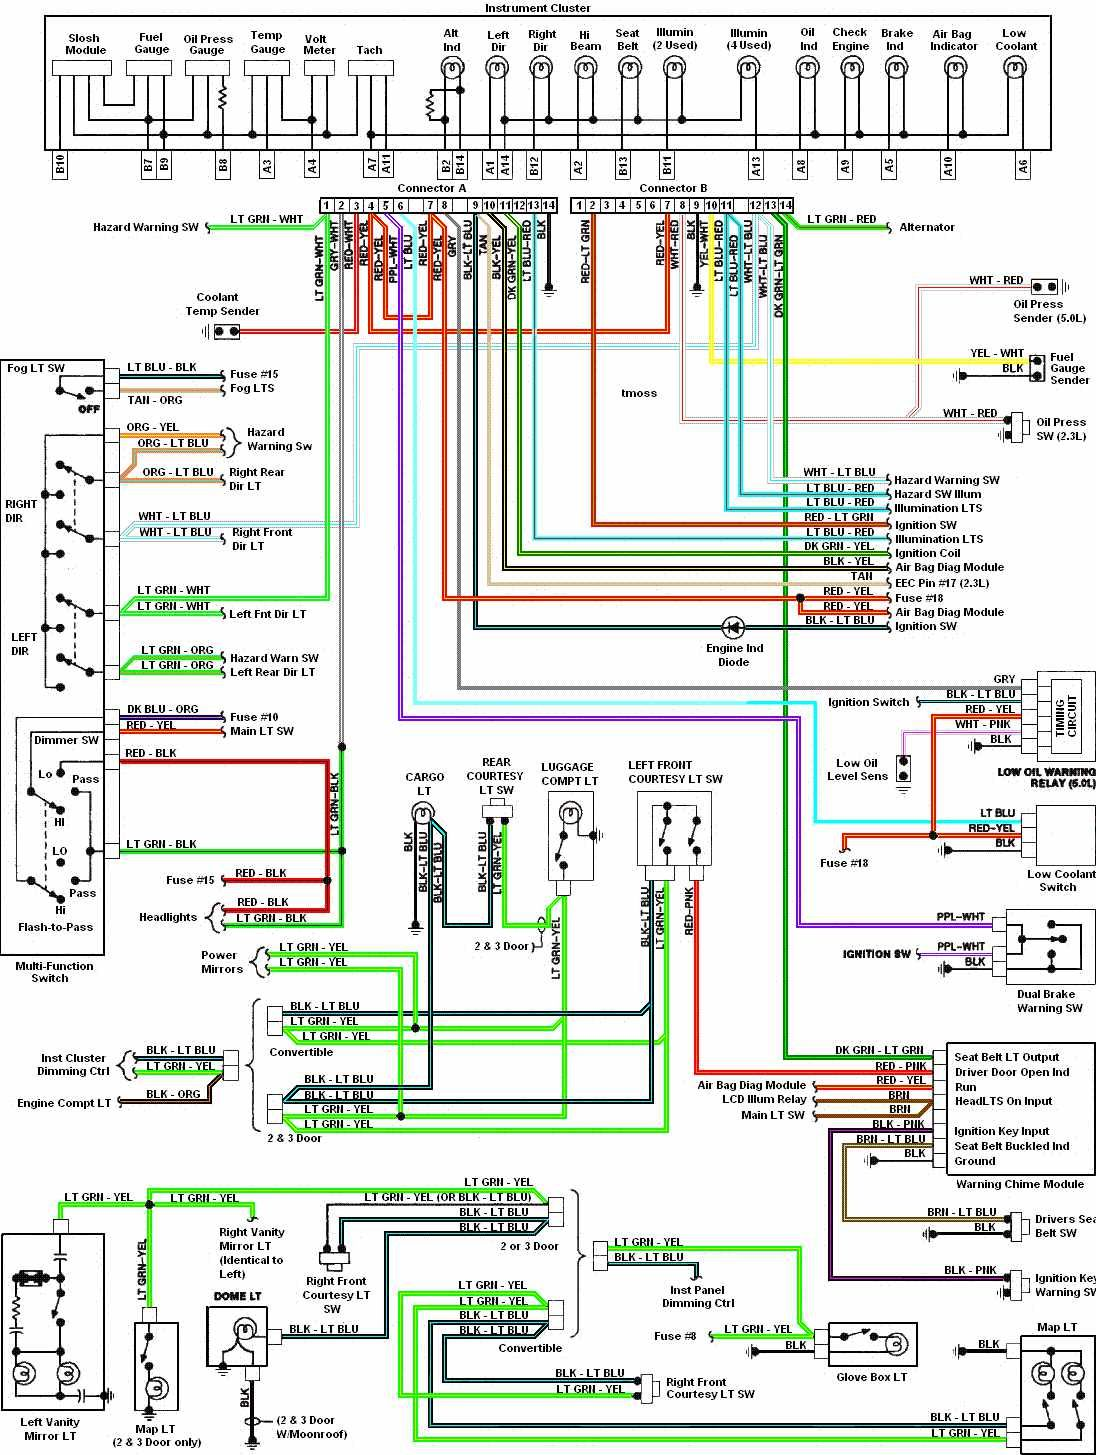 1966 mustang dash wiring diagram wiring diagrams konsult78 mustang v8 wiring harness wiring diagram operations 1966 [ 1096 x 1455 Pixel ]